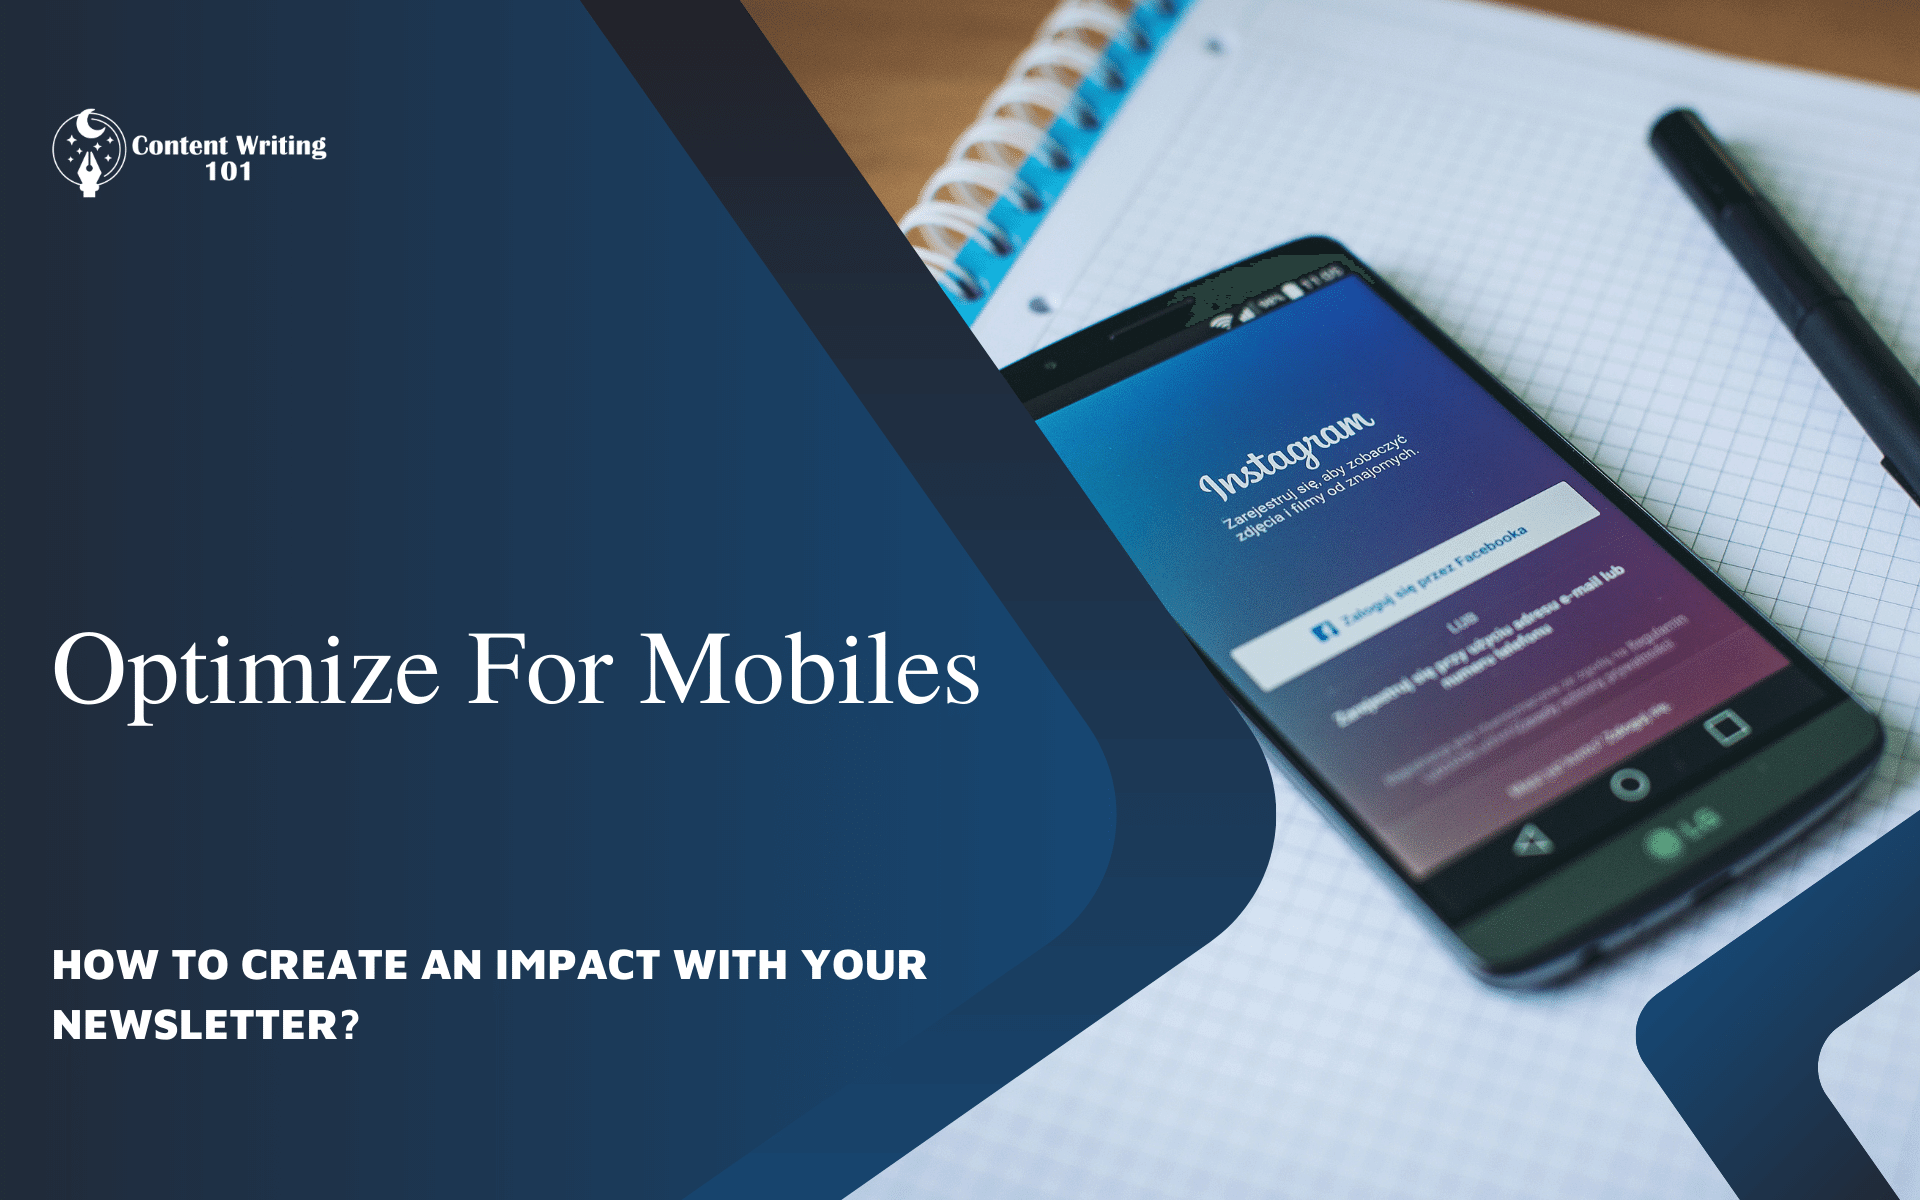 Optimize For Mobiles